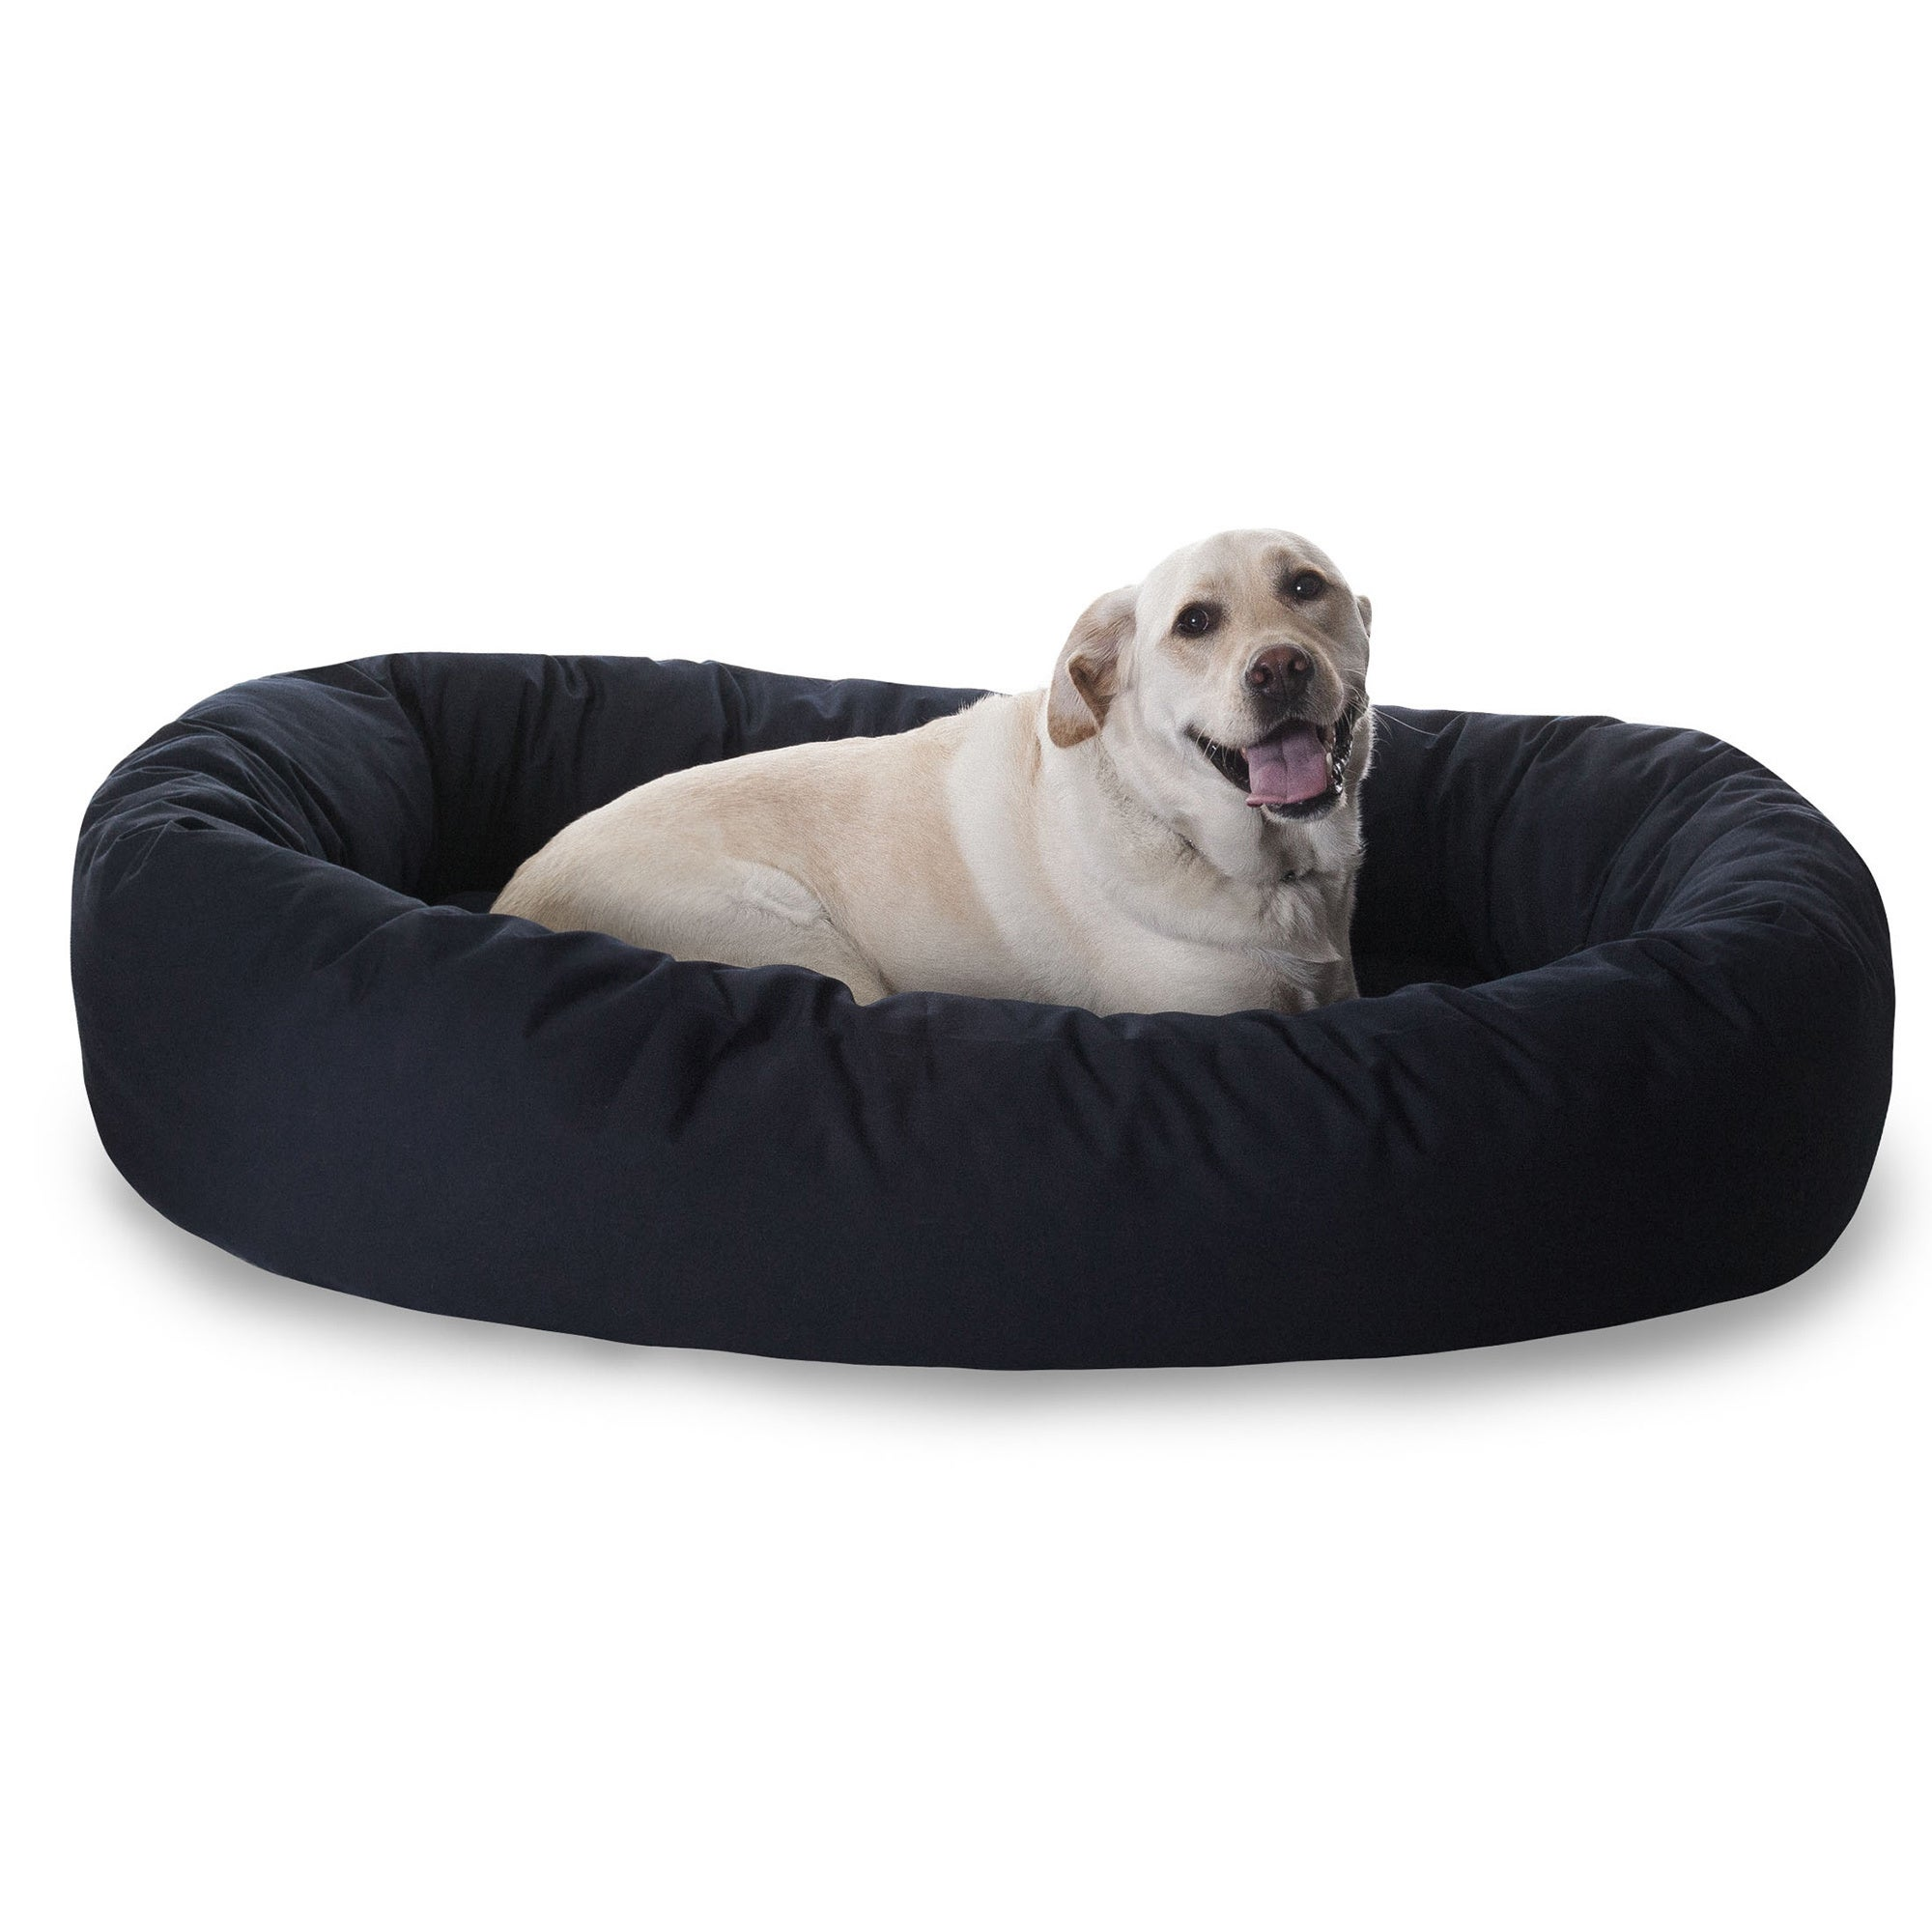 dog foam extra cover fresh petmaker bed removable pet with of shipping memory free large amazon today sealy lovely lux